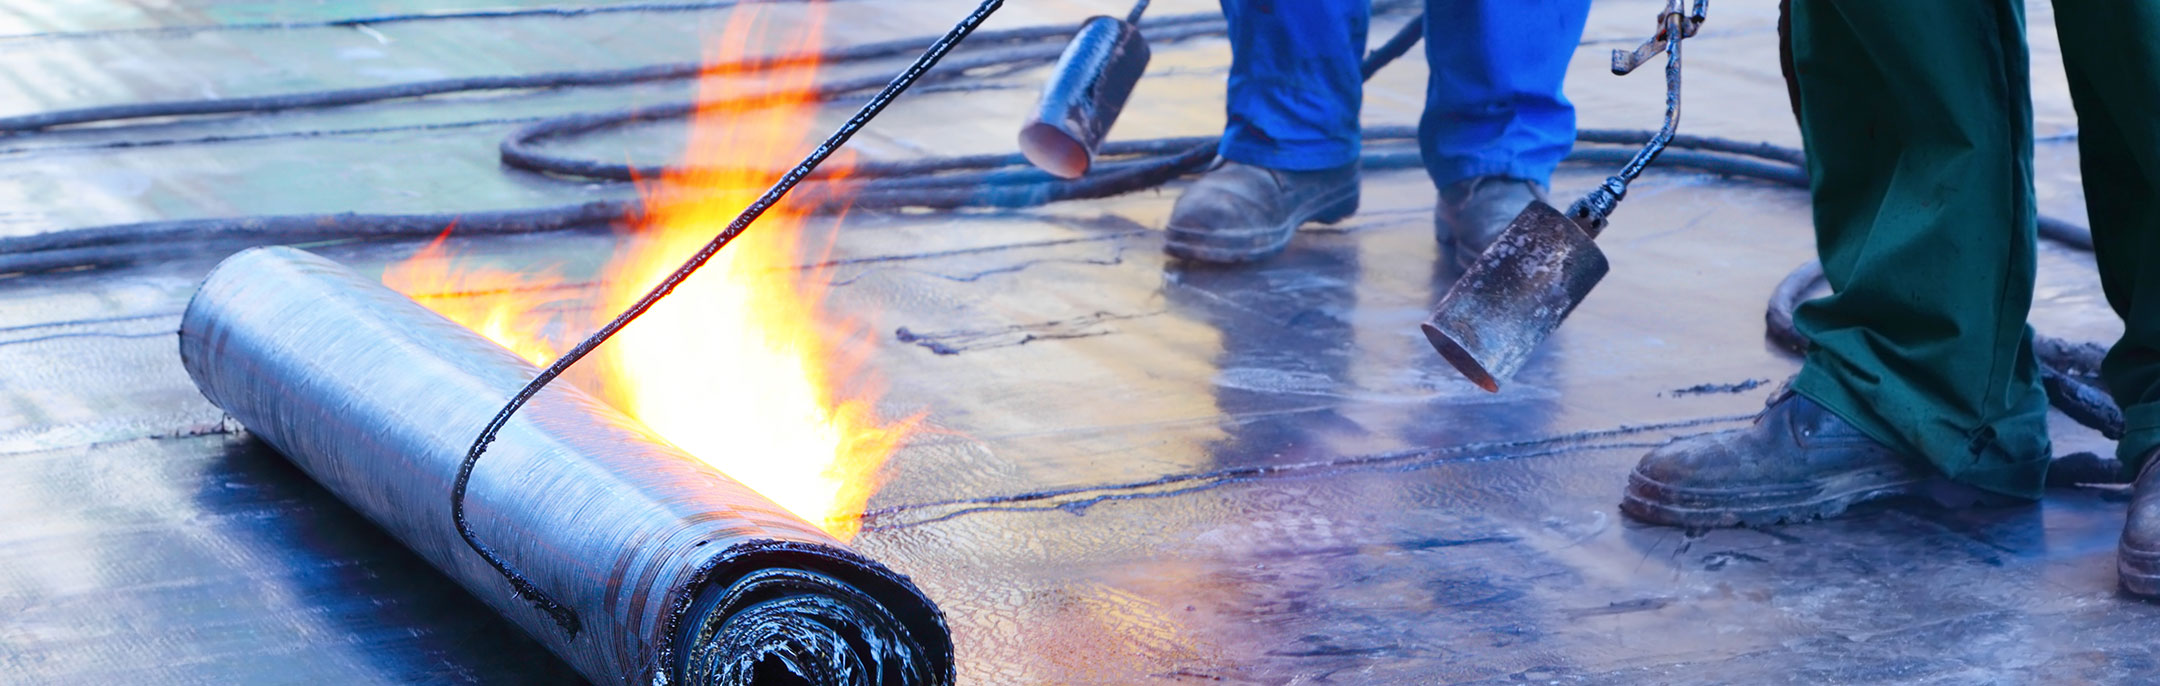 All-Phaze Roofing & General Contracting   Roofing Services